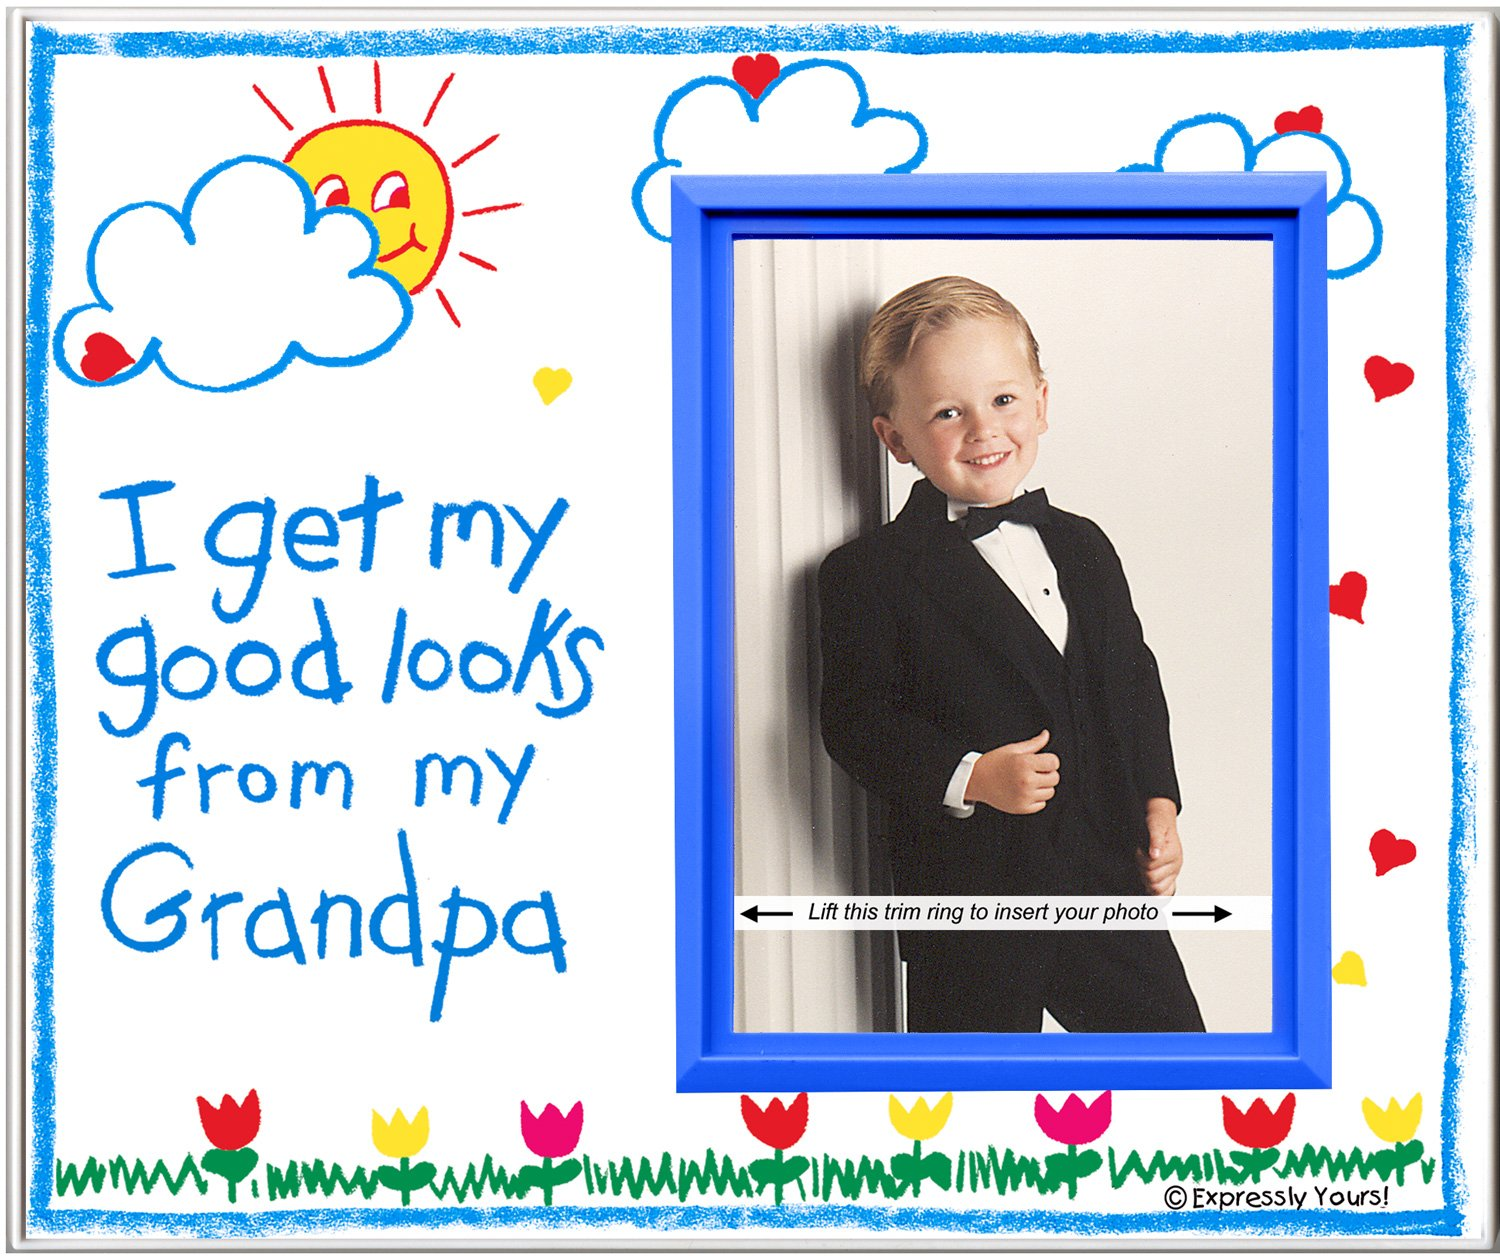 Grandpa Picture Frame | Affordable, Colorful and Fun | Holds 3.5 x 5 Photo | From Boy or Girl | Innovative Front-Loading Design | Crayola Theme Expressly Yours!